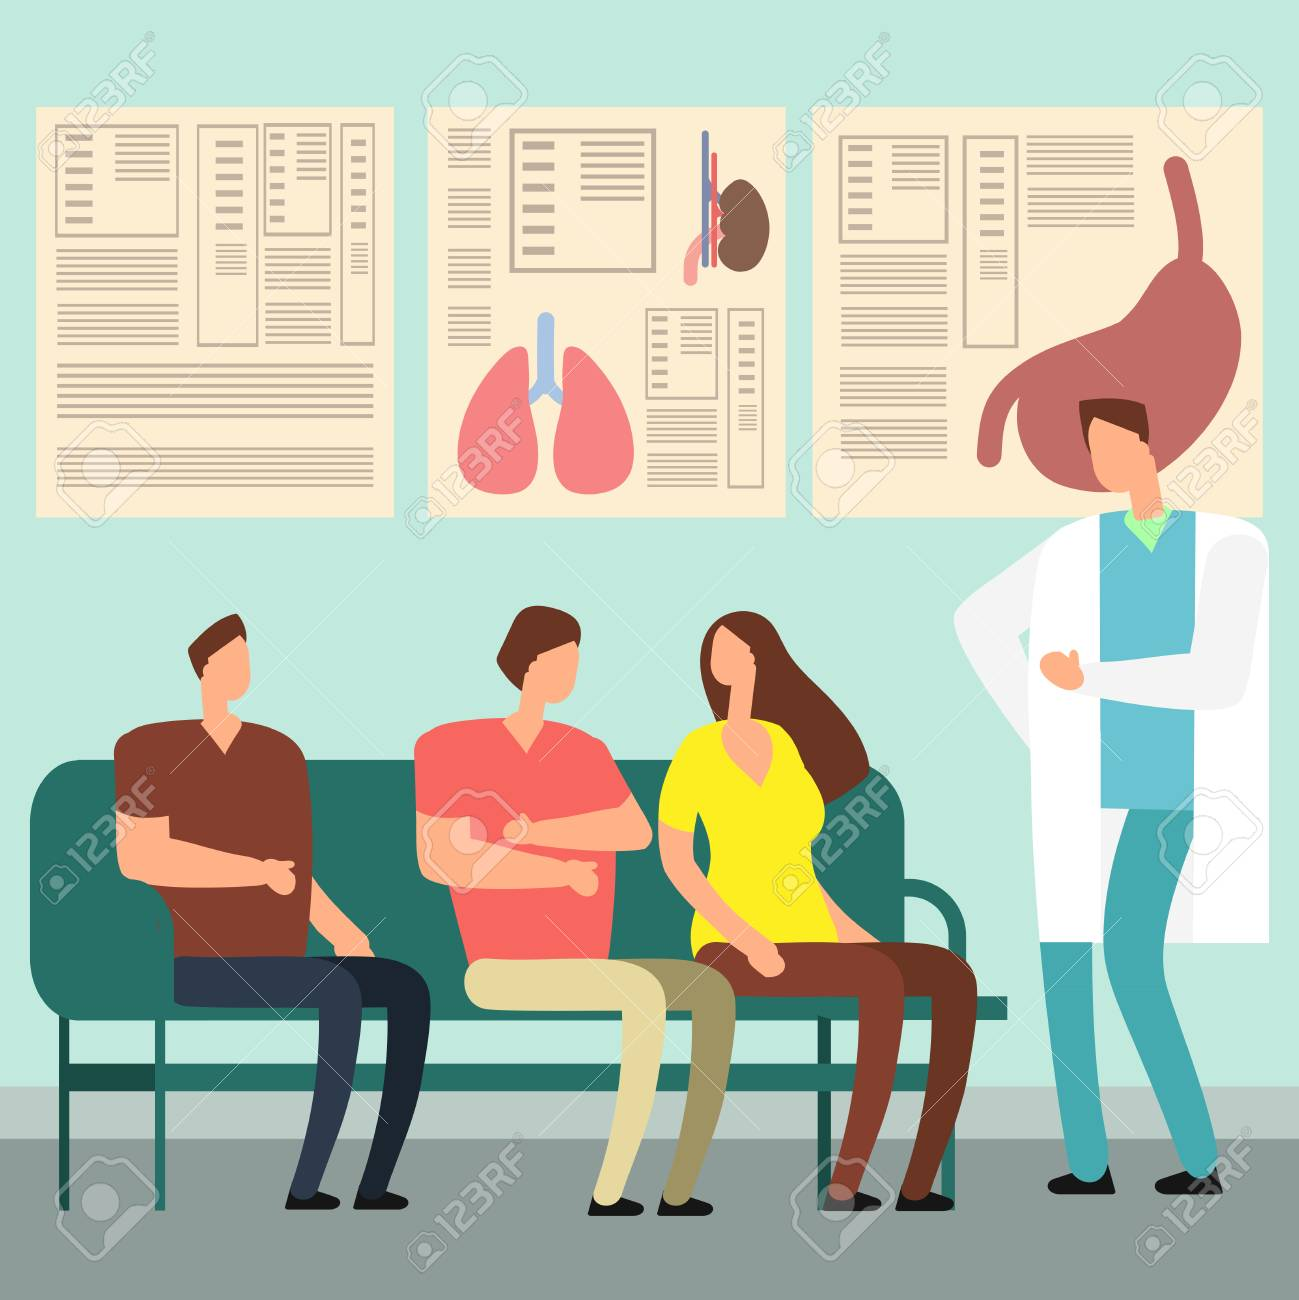 Healthcare vector concept - patients and doctor in hospital waiting room. Disabled people at doctors office. Illustration of patient waiting doctor, hospital corridor and lobby - 112030889